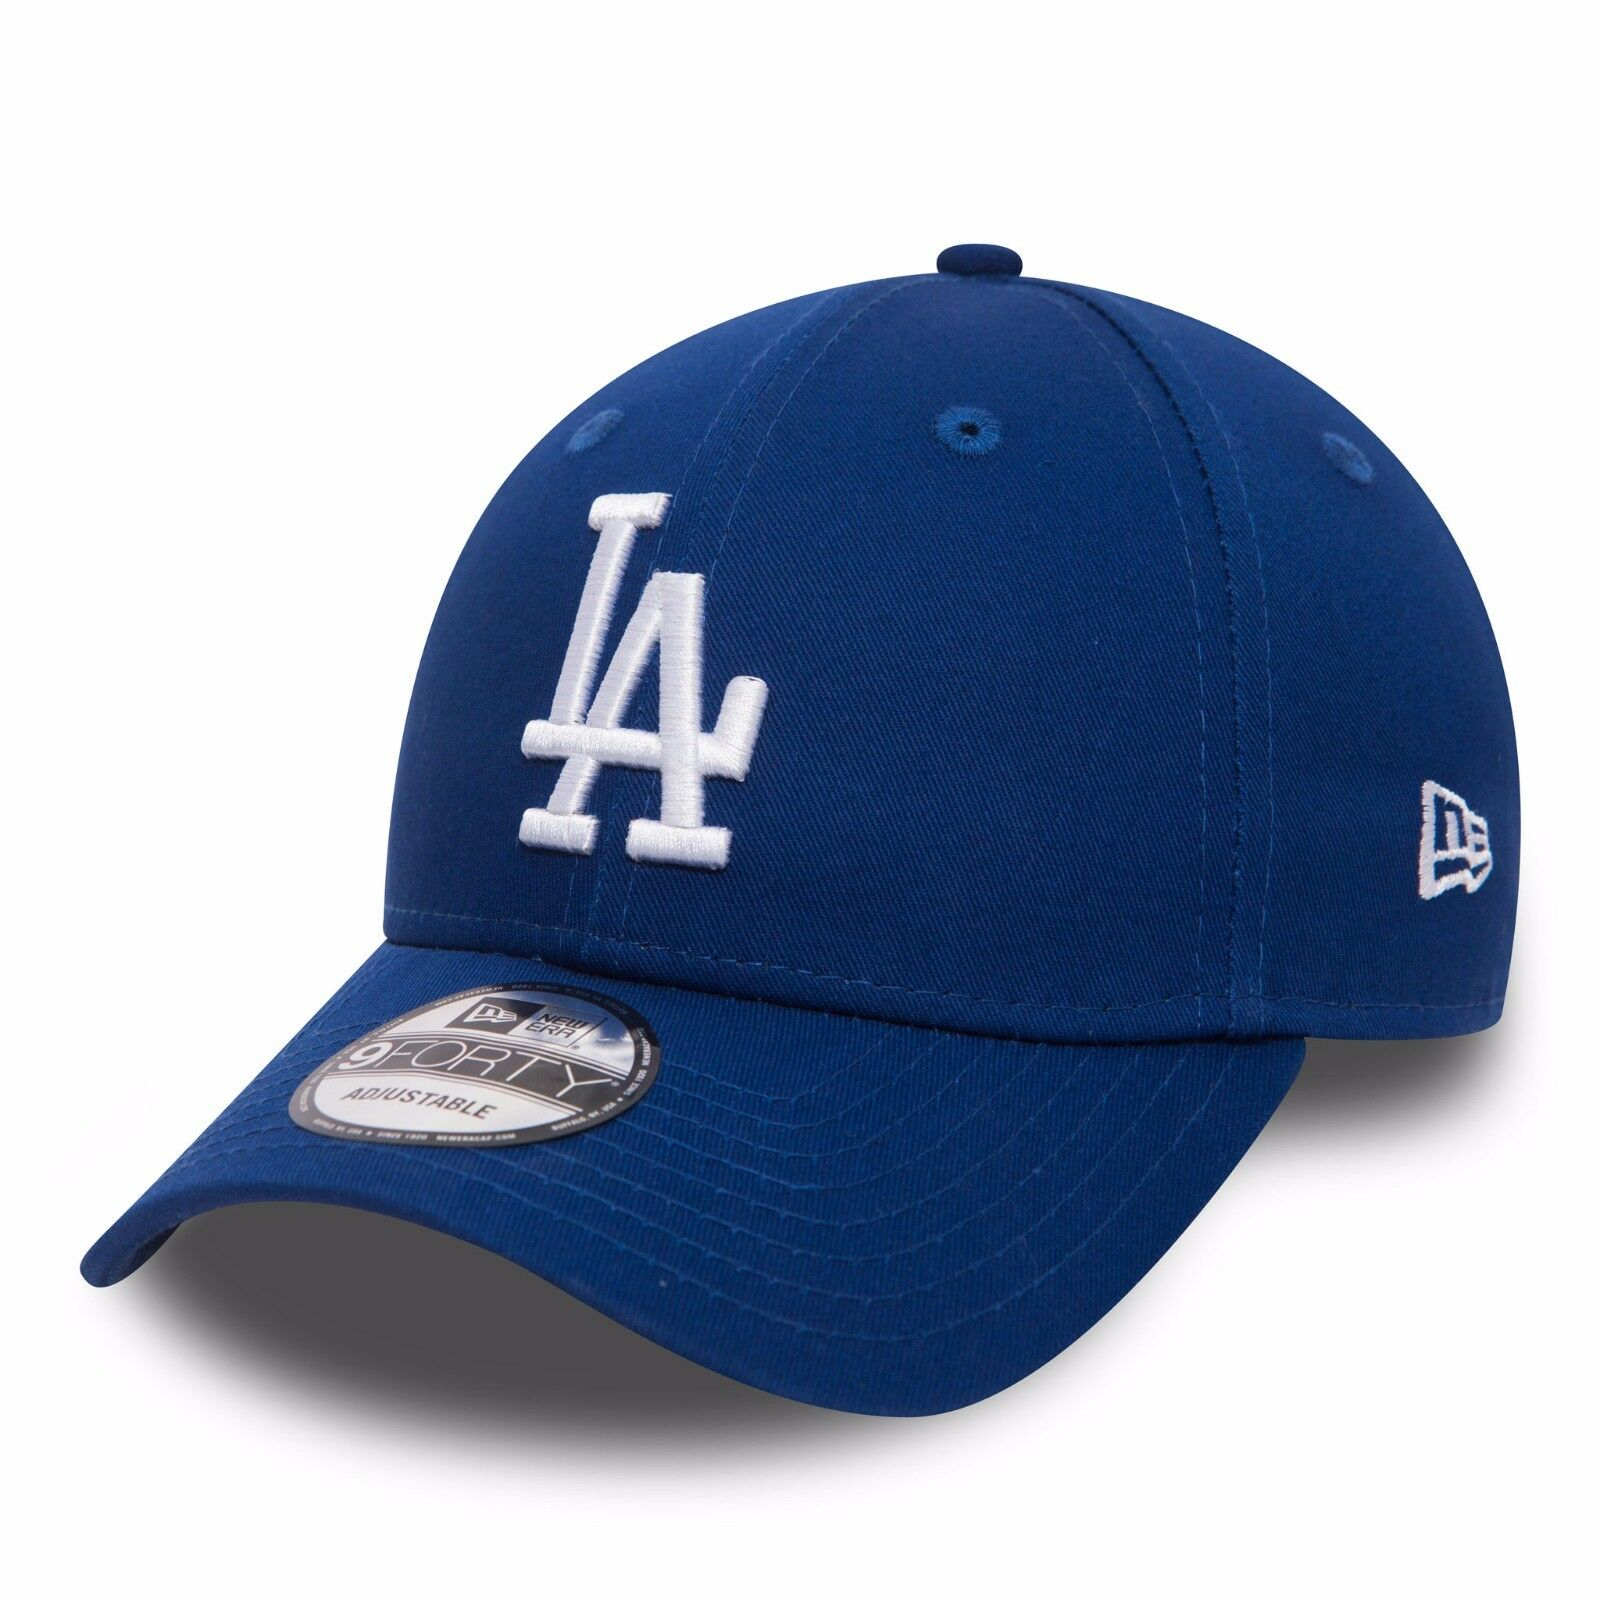 Los Angeles Dodgers #2527